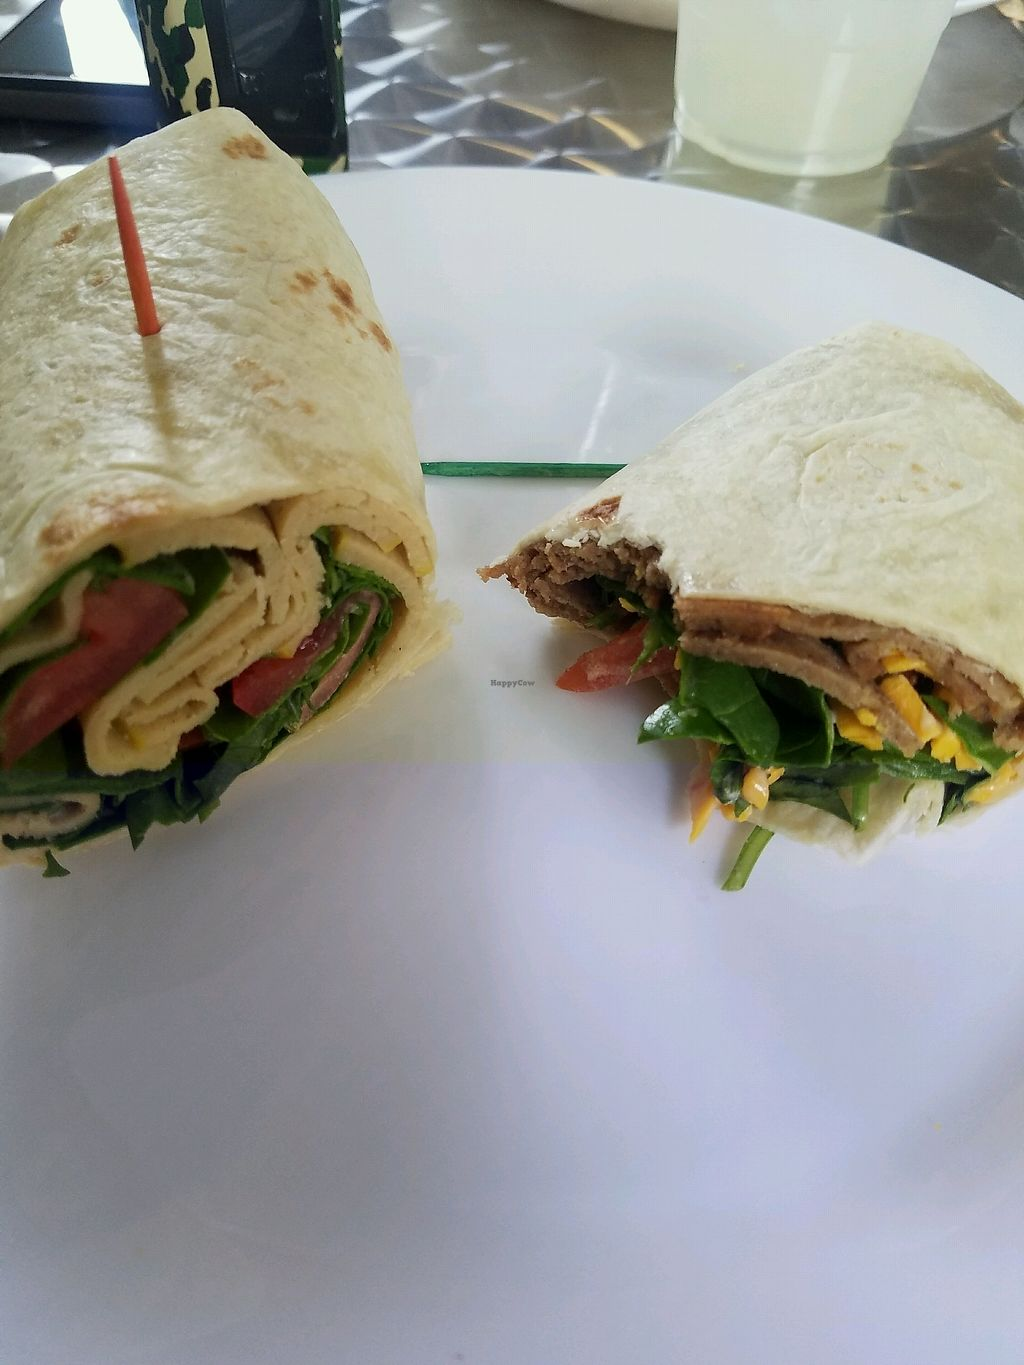 """Photo of Wildflower Vegan Co. Featuring Burnamup  by <a href=""""/members/profile/Myjeanny01"""">Myjeanny01</a> <br/>ham and turkey wraps <br/> January 27, 2018  - <a href='/contact/abuse/image/109093/351575'>Report</a>"""